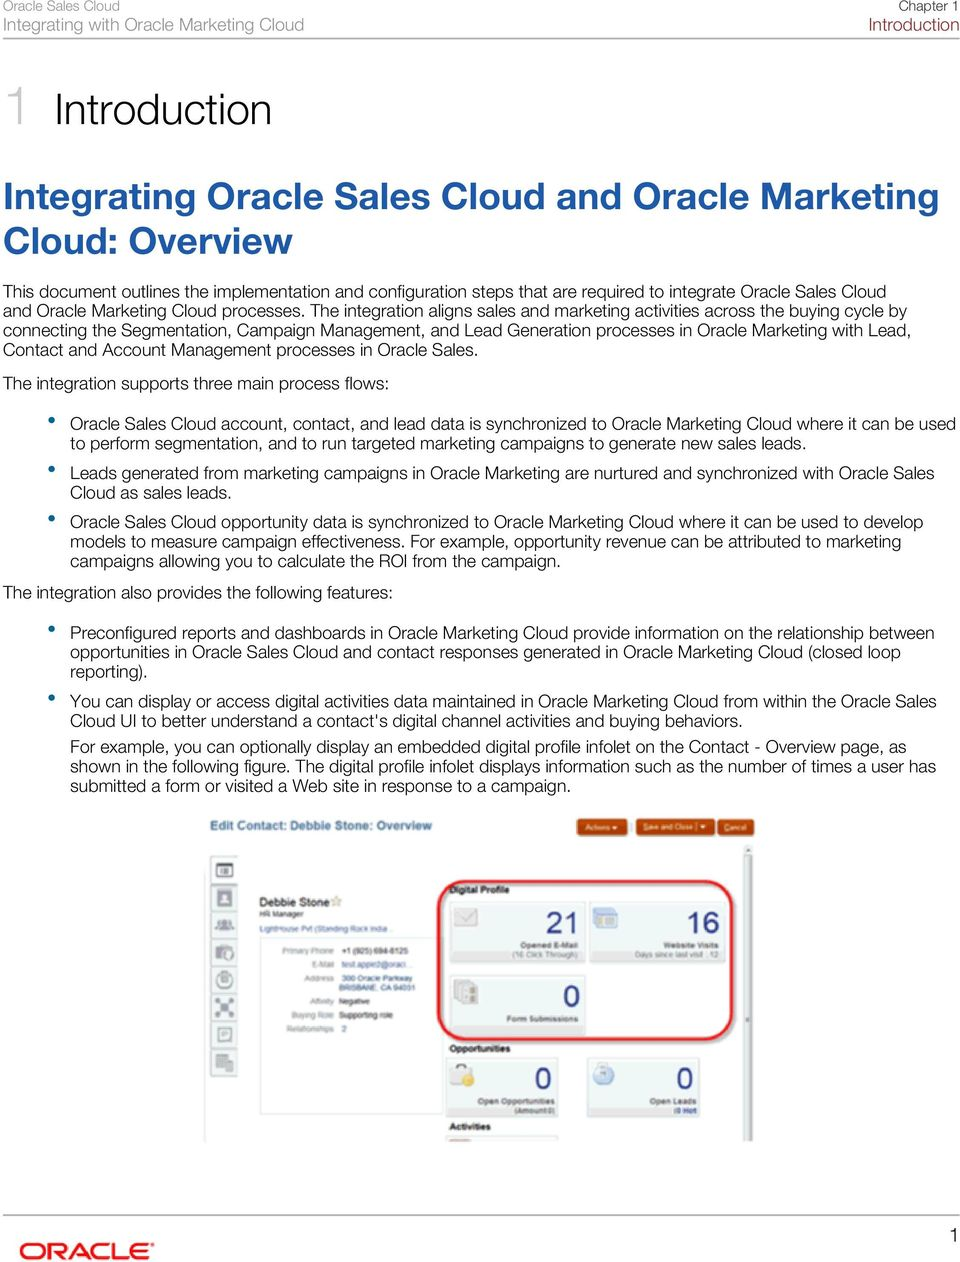 The integration aligns sales and marketing activities across the buying cycle by connecting the Segmentation, Campaign Management, and Lead Generation processes in Oracle Marketing with Lead, Contact